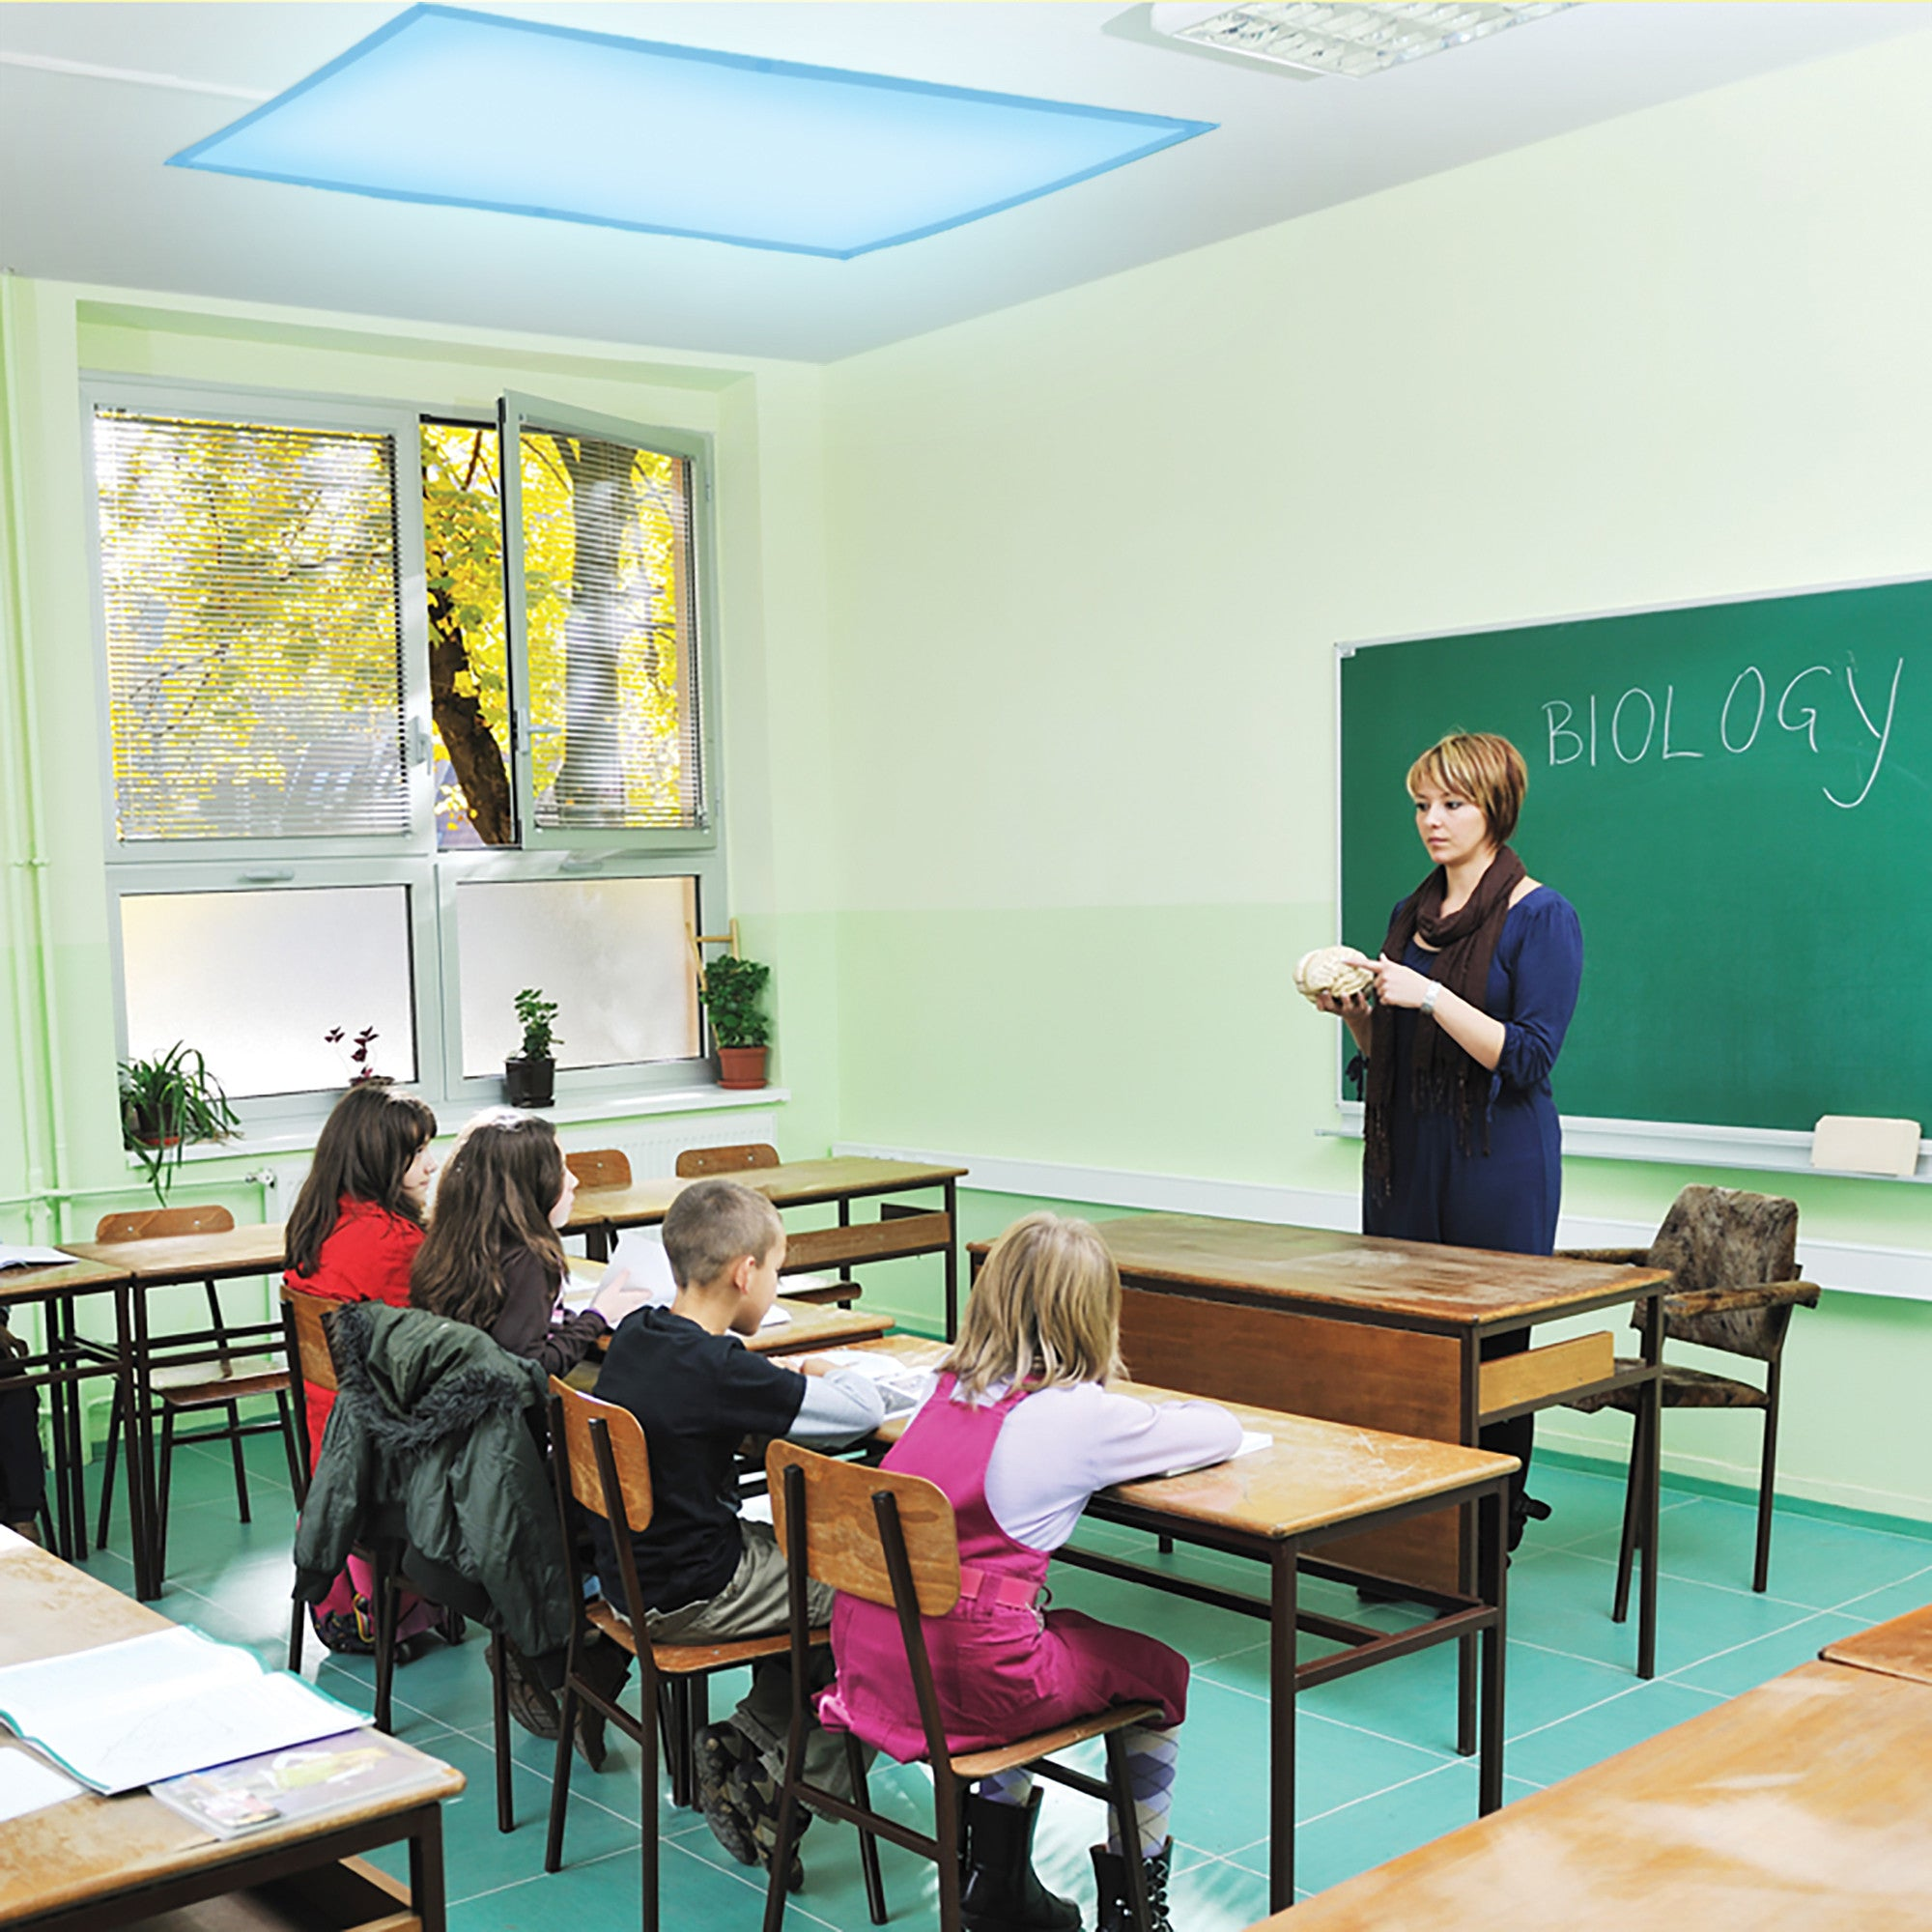 Classroom Design For Living And Learning With Autism ~ Fluorescent light filters set of special needs